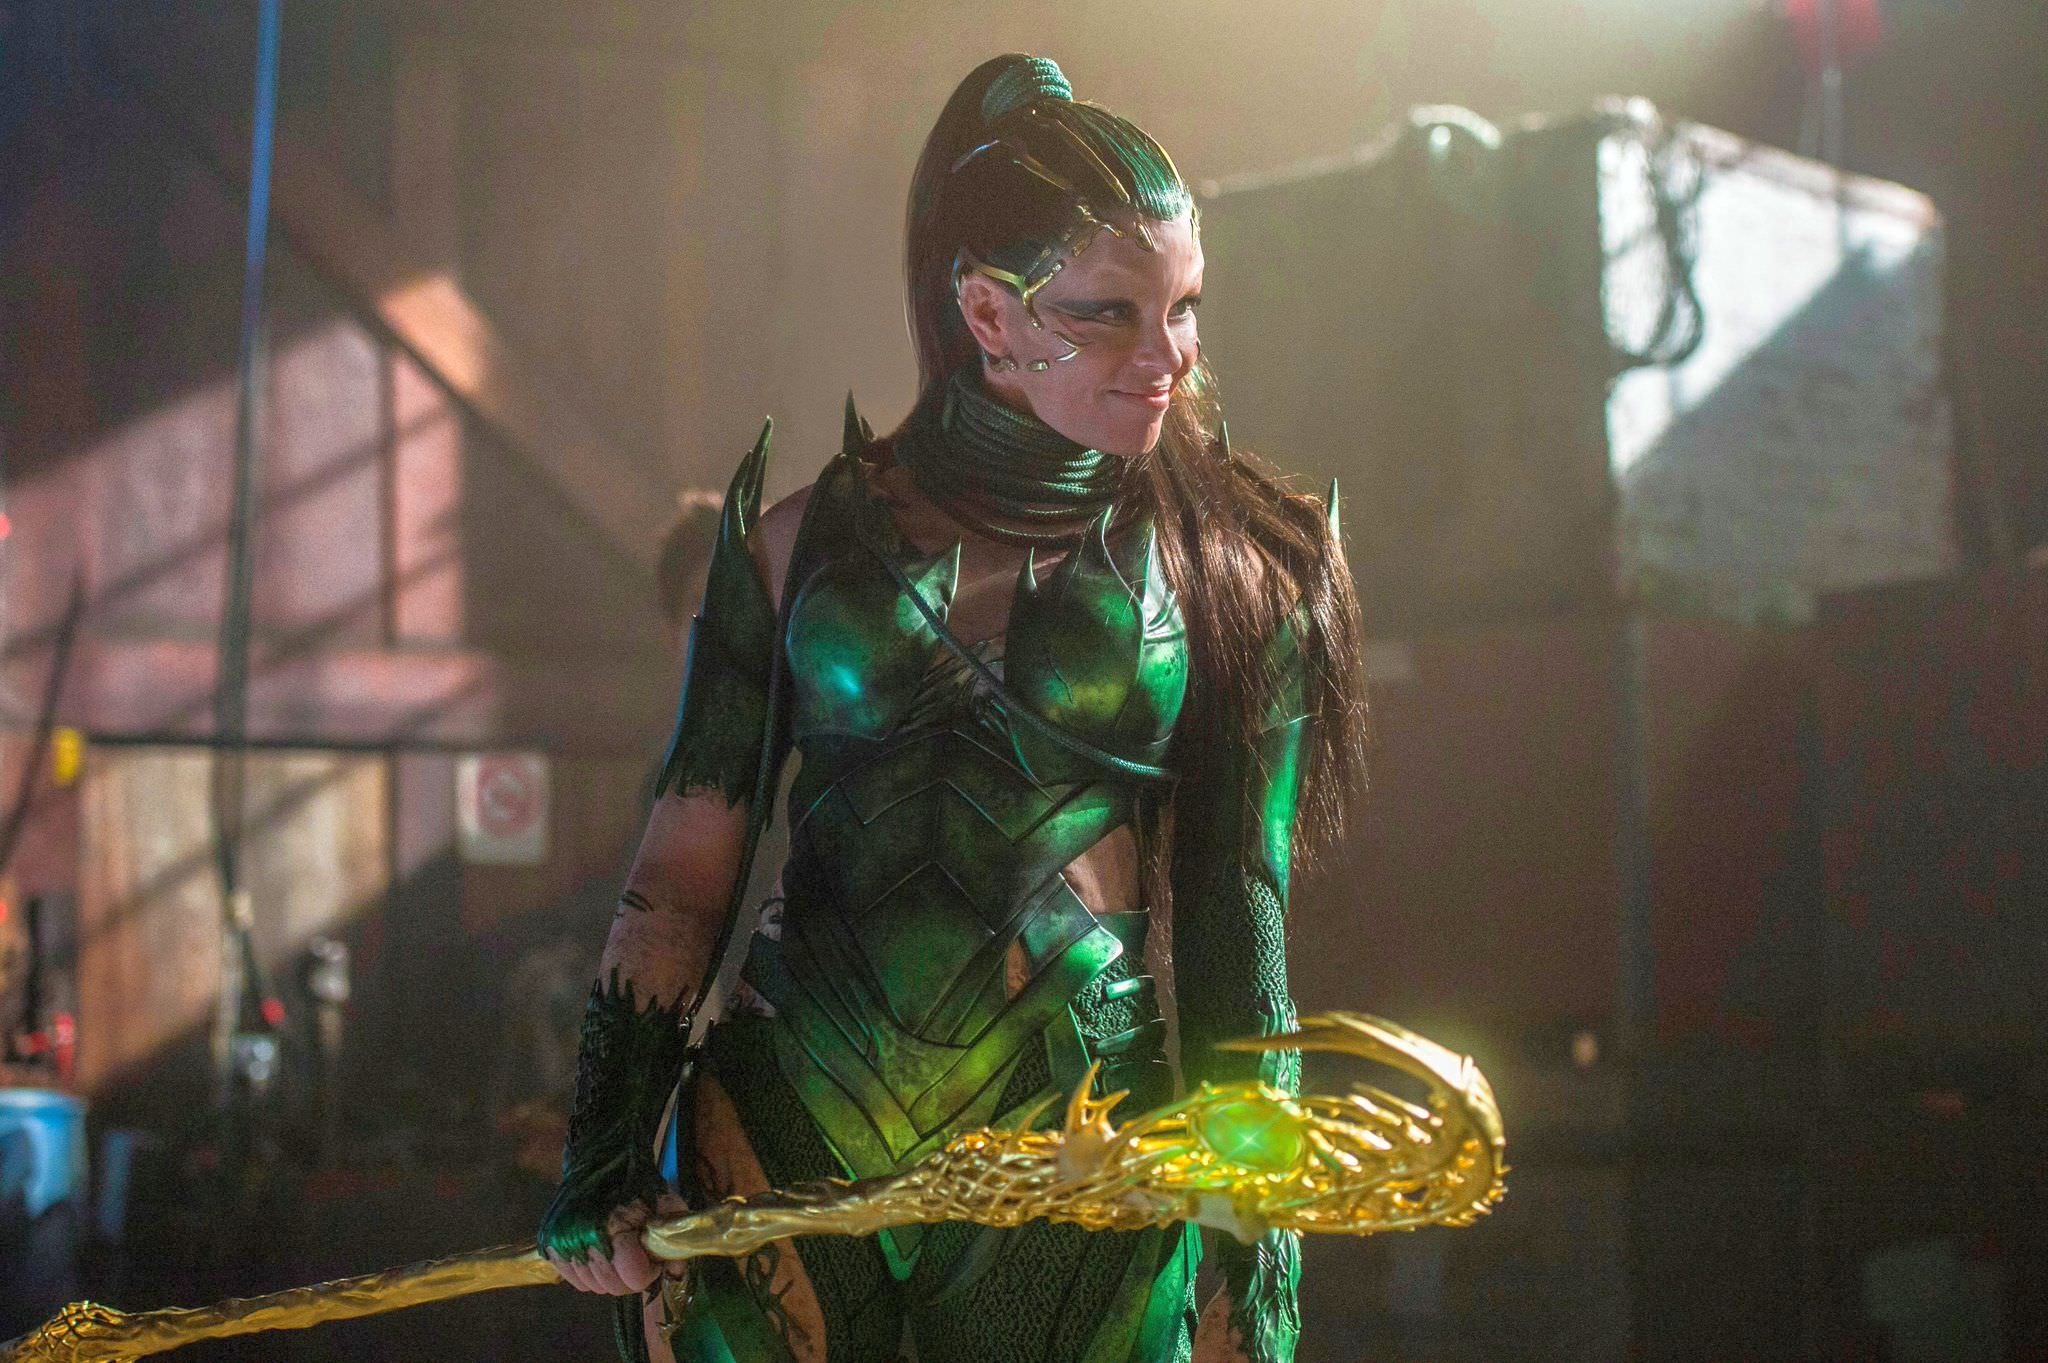 New Rita Repulsa Photo From Power Rangers Revealed